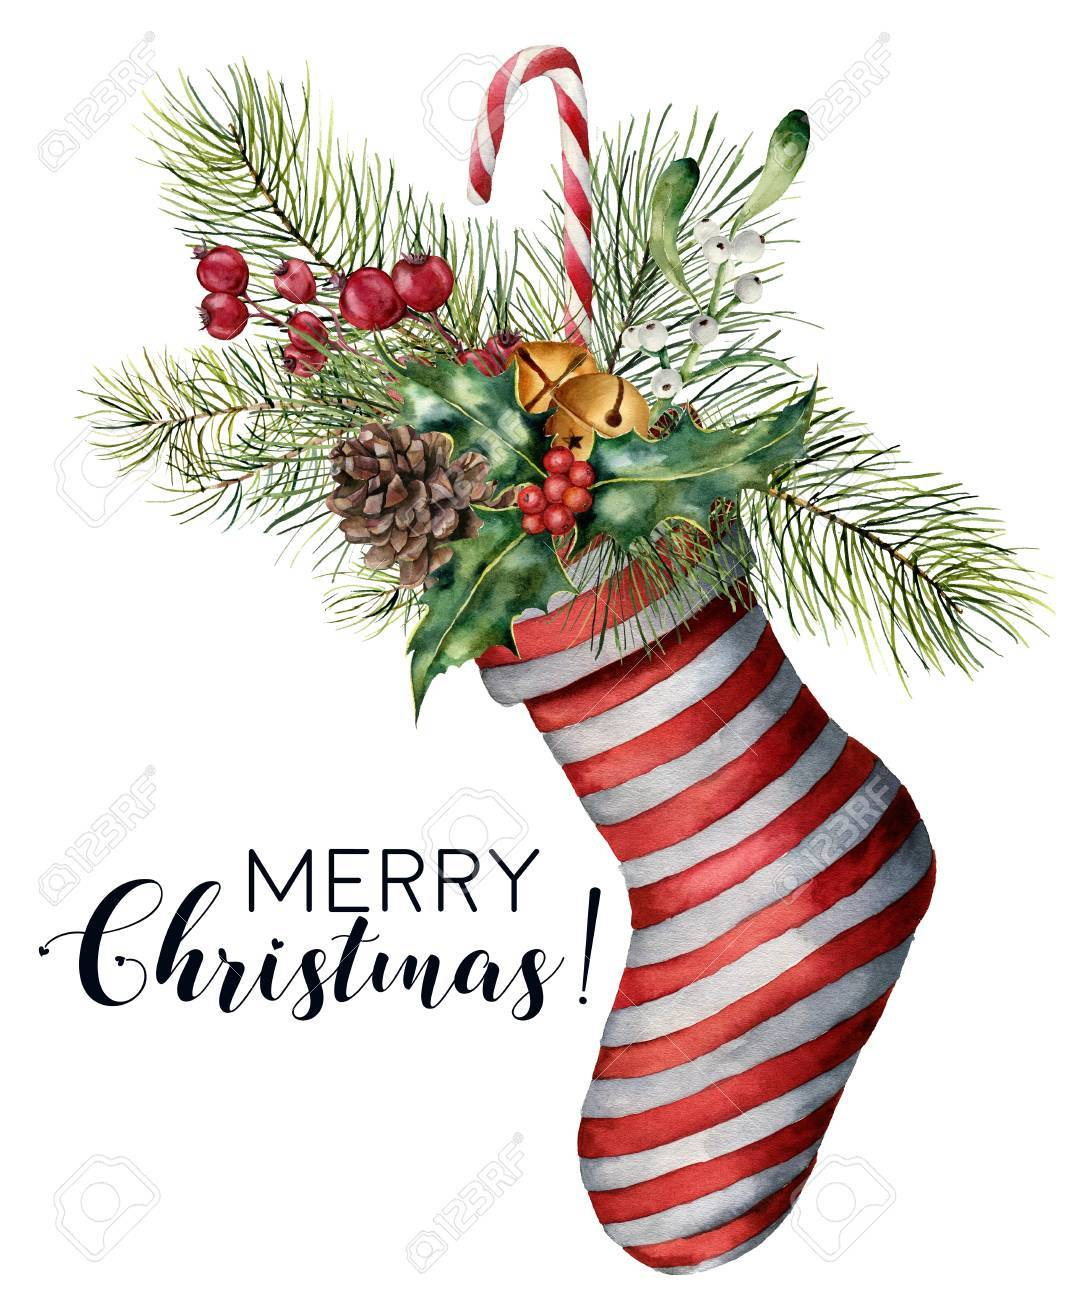 Watercolor Merry Christmas card with decor. Hand painted Christmas striped sock with fir branch, pine cone, holly, mistletoe, candy, bells and berries isolated on white background. Holiday print. - 90094448